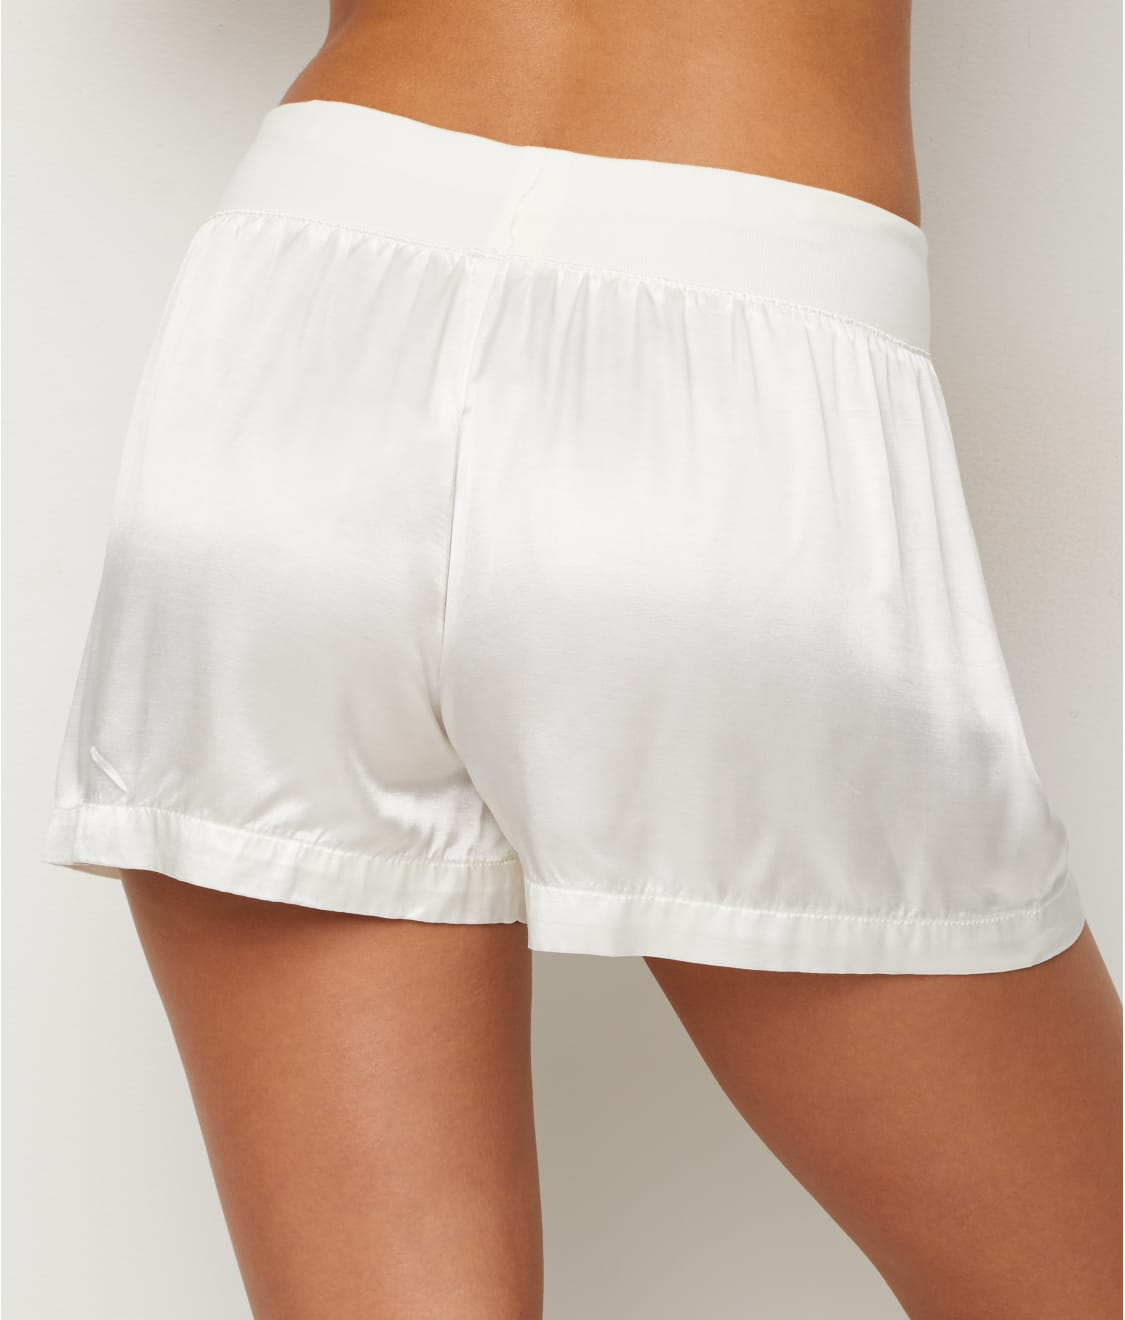 See Mikel Satin Sleep Boxer Shorts in Pearl 5b0b8a66d